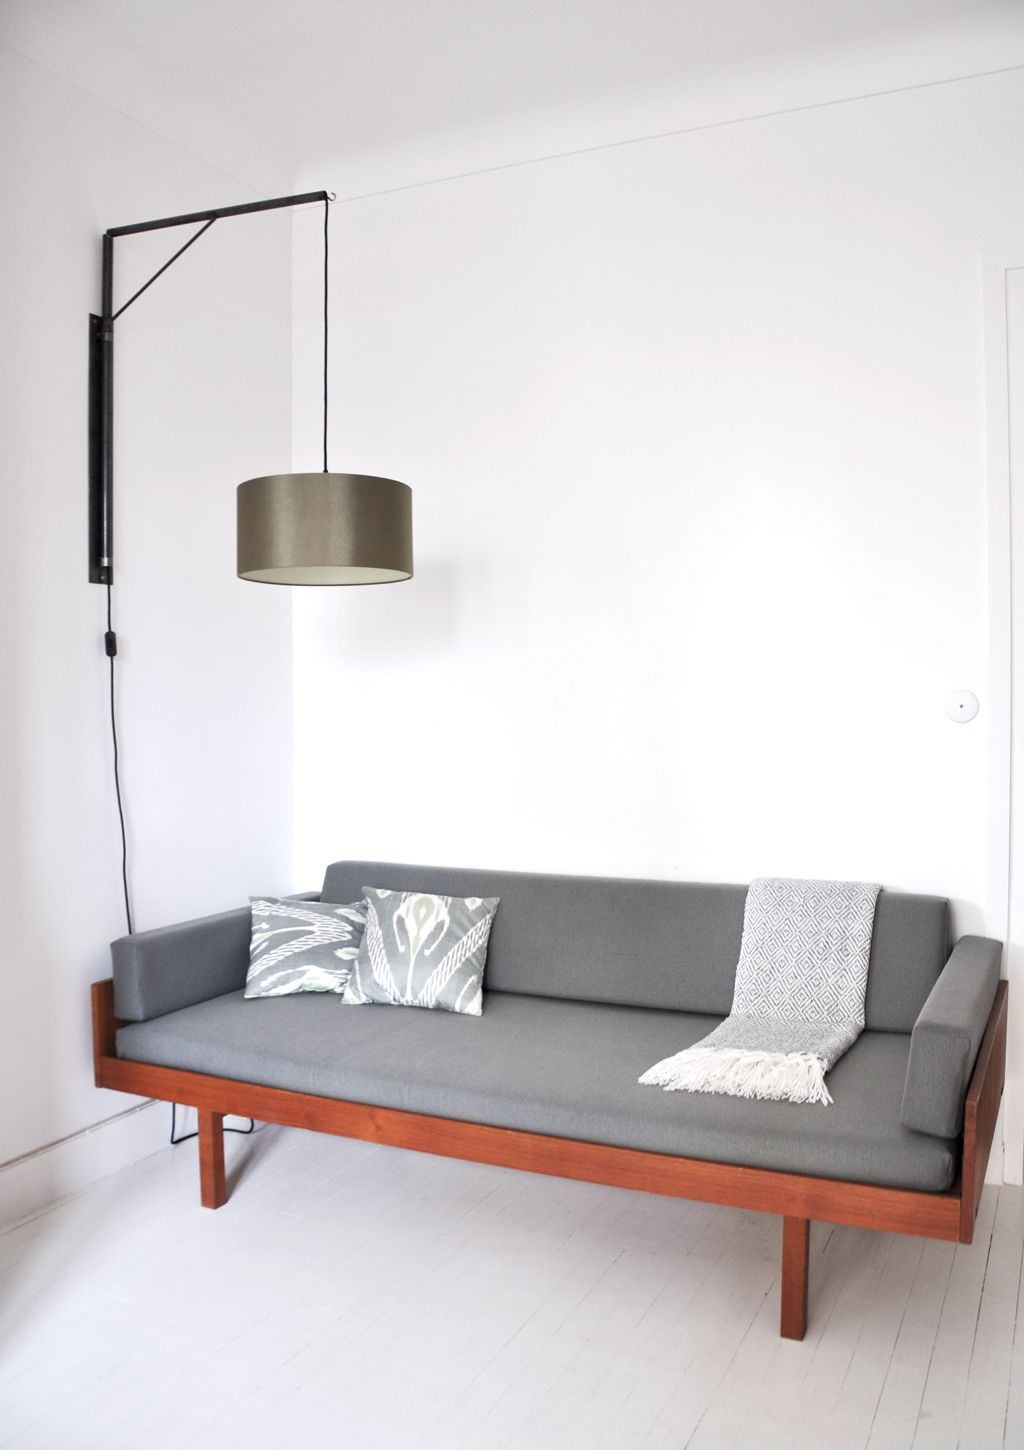 daybed horsn s made in denmark horsens design scandinave lit de jour banquette lit. Black Bedroom Furniture Sets. Home Design Ideas